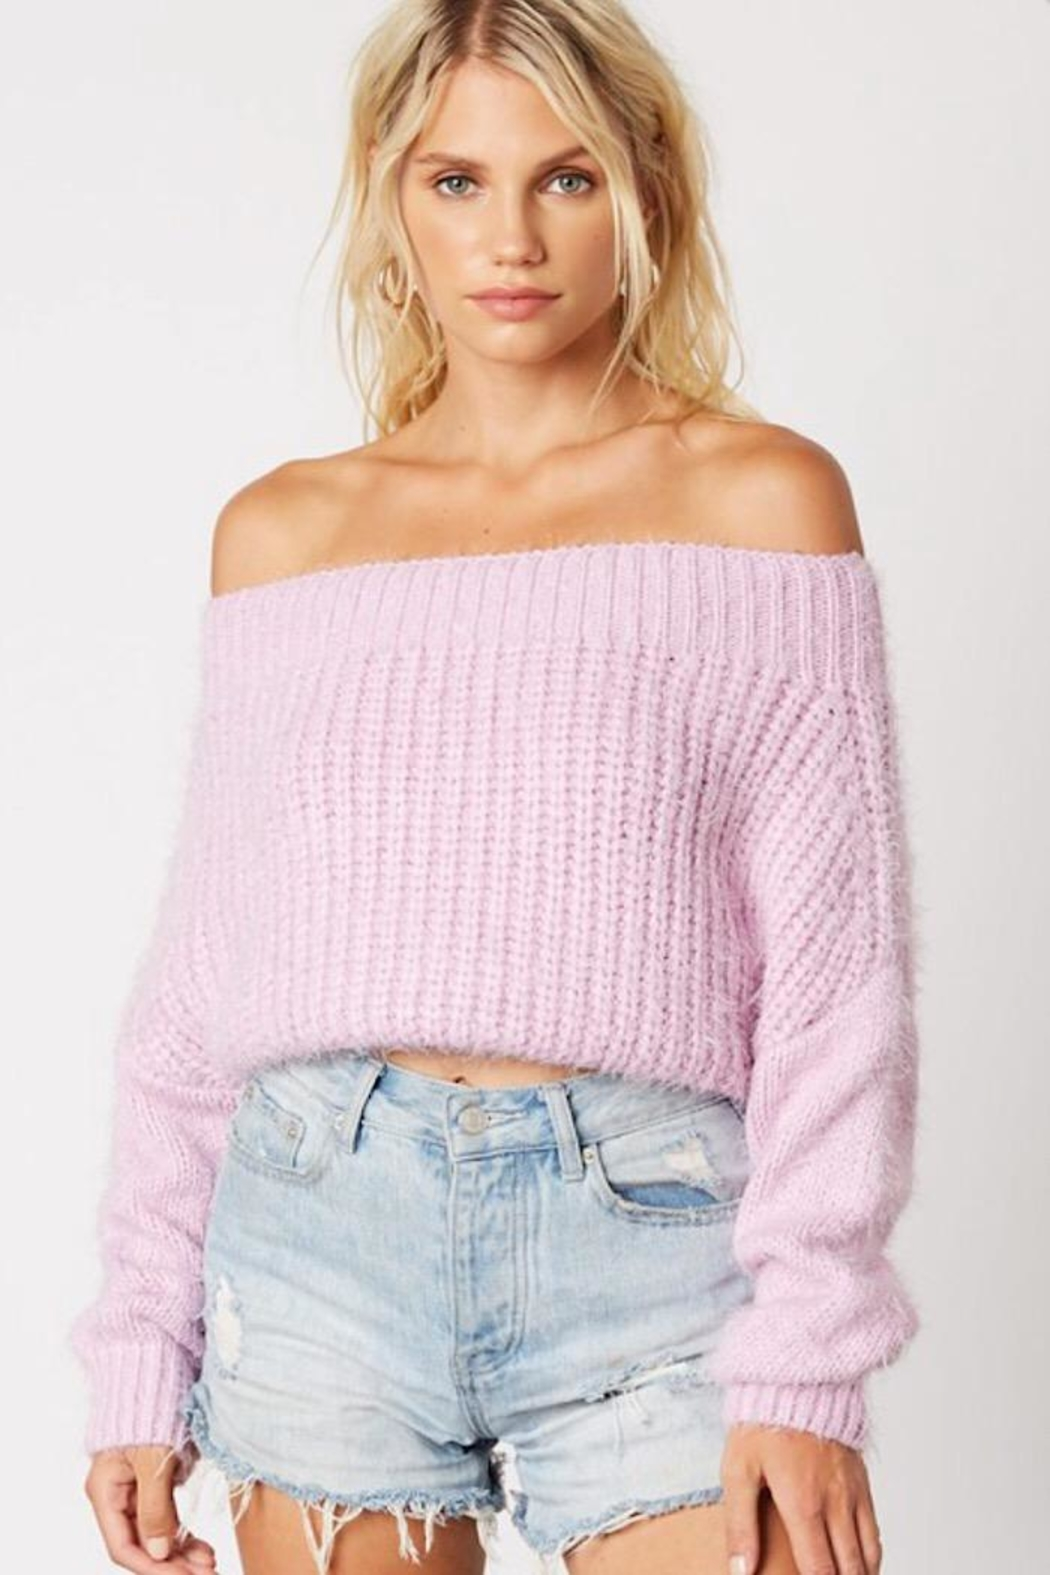 Cotton Candy Fuzzy Cropped Sweater - Main Image